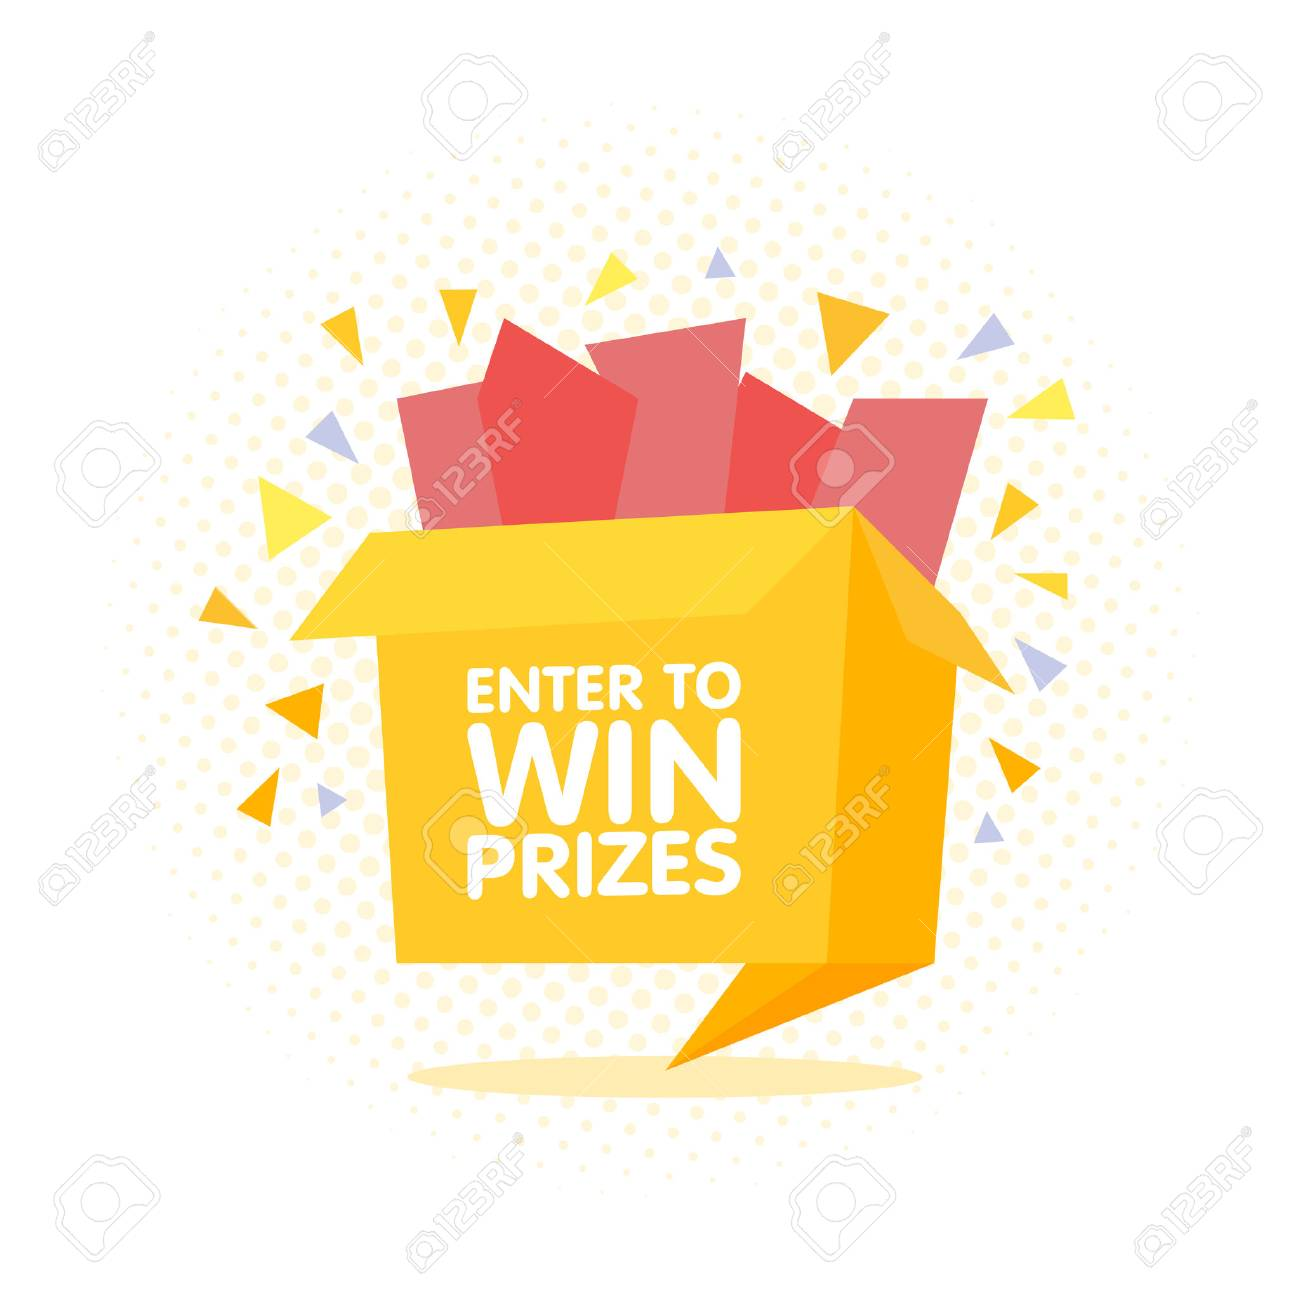 Enter to win prizes gift box  Cartoon origami style vector illustration